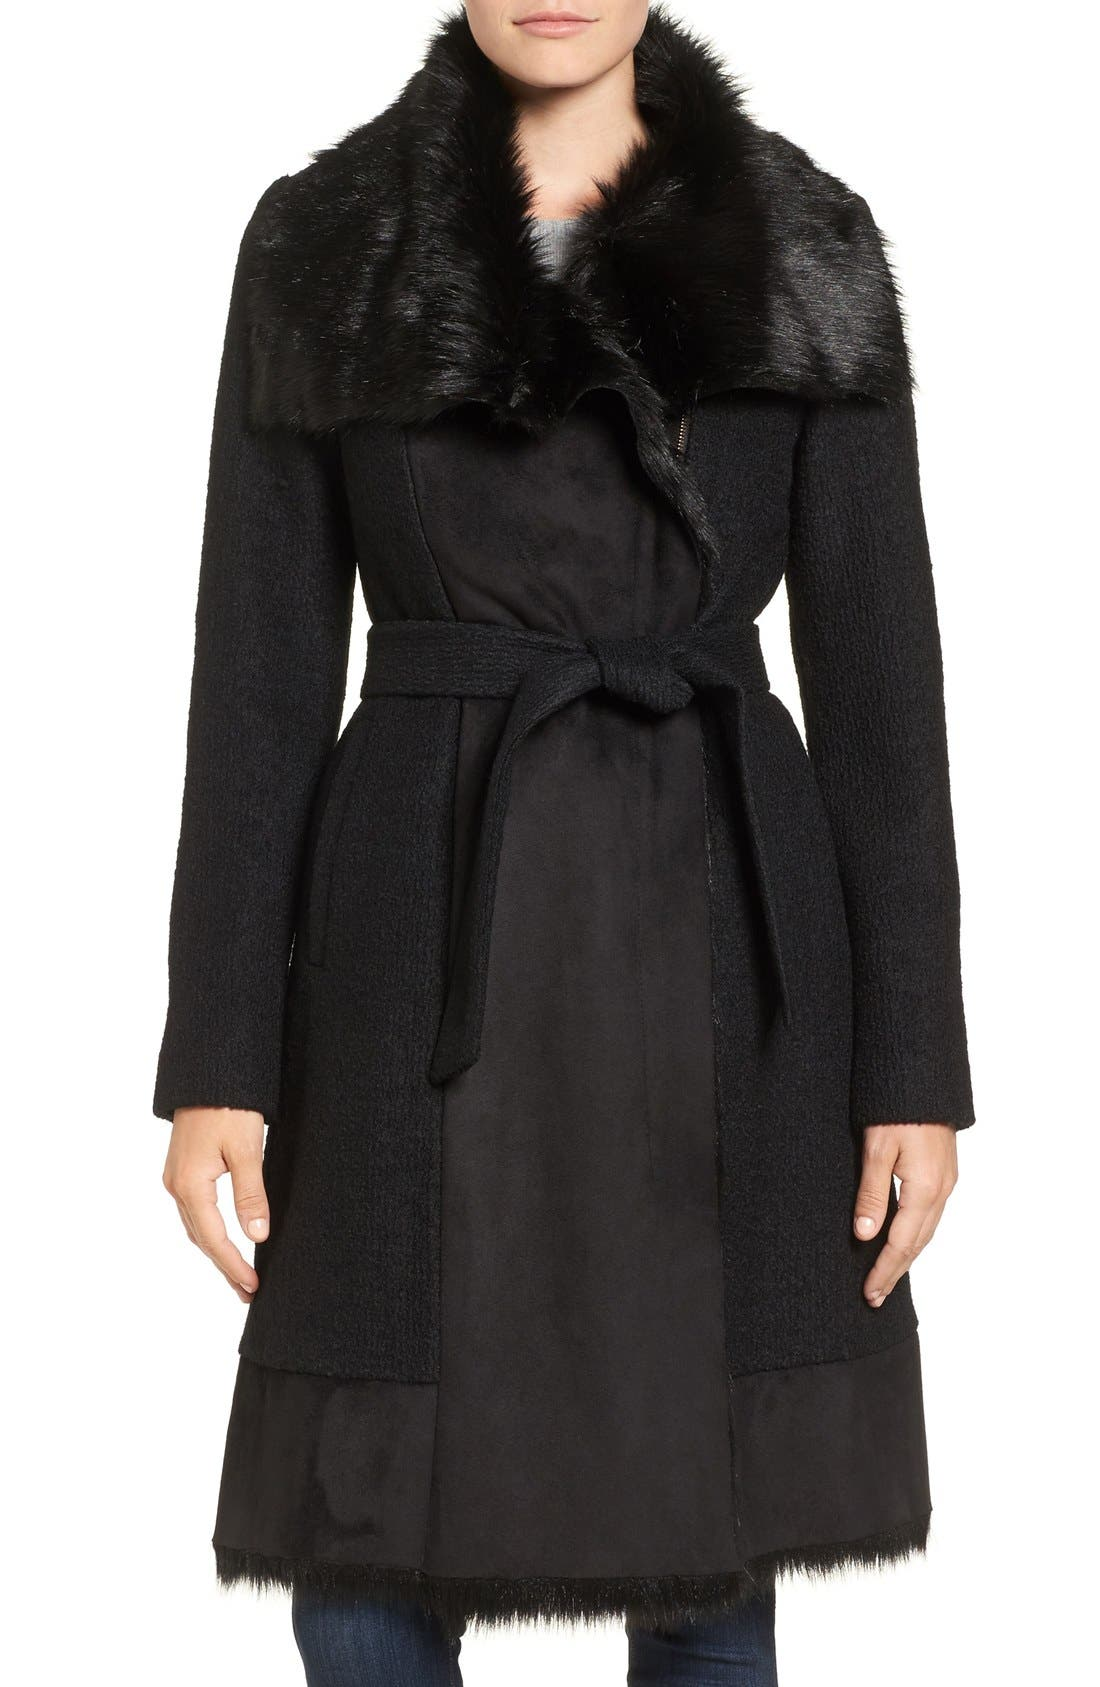 Alternate Image 1 Selected - Vince Camuto Faux Shearling Trim Belted Wool Blend Long Coat